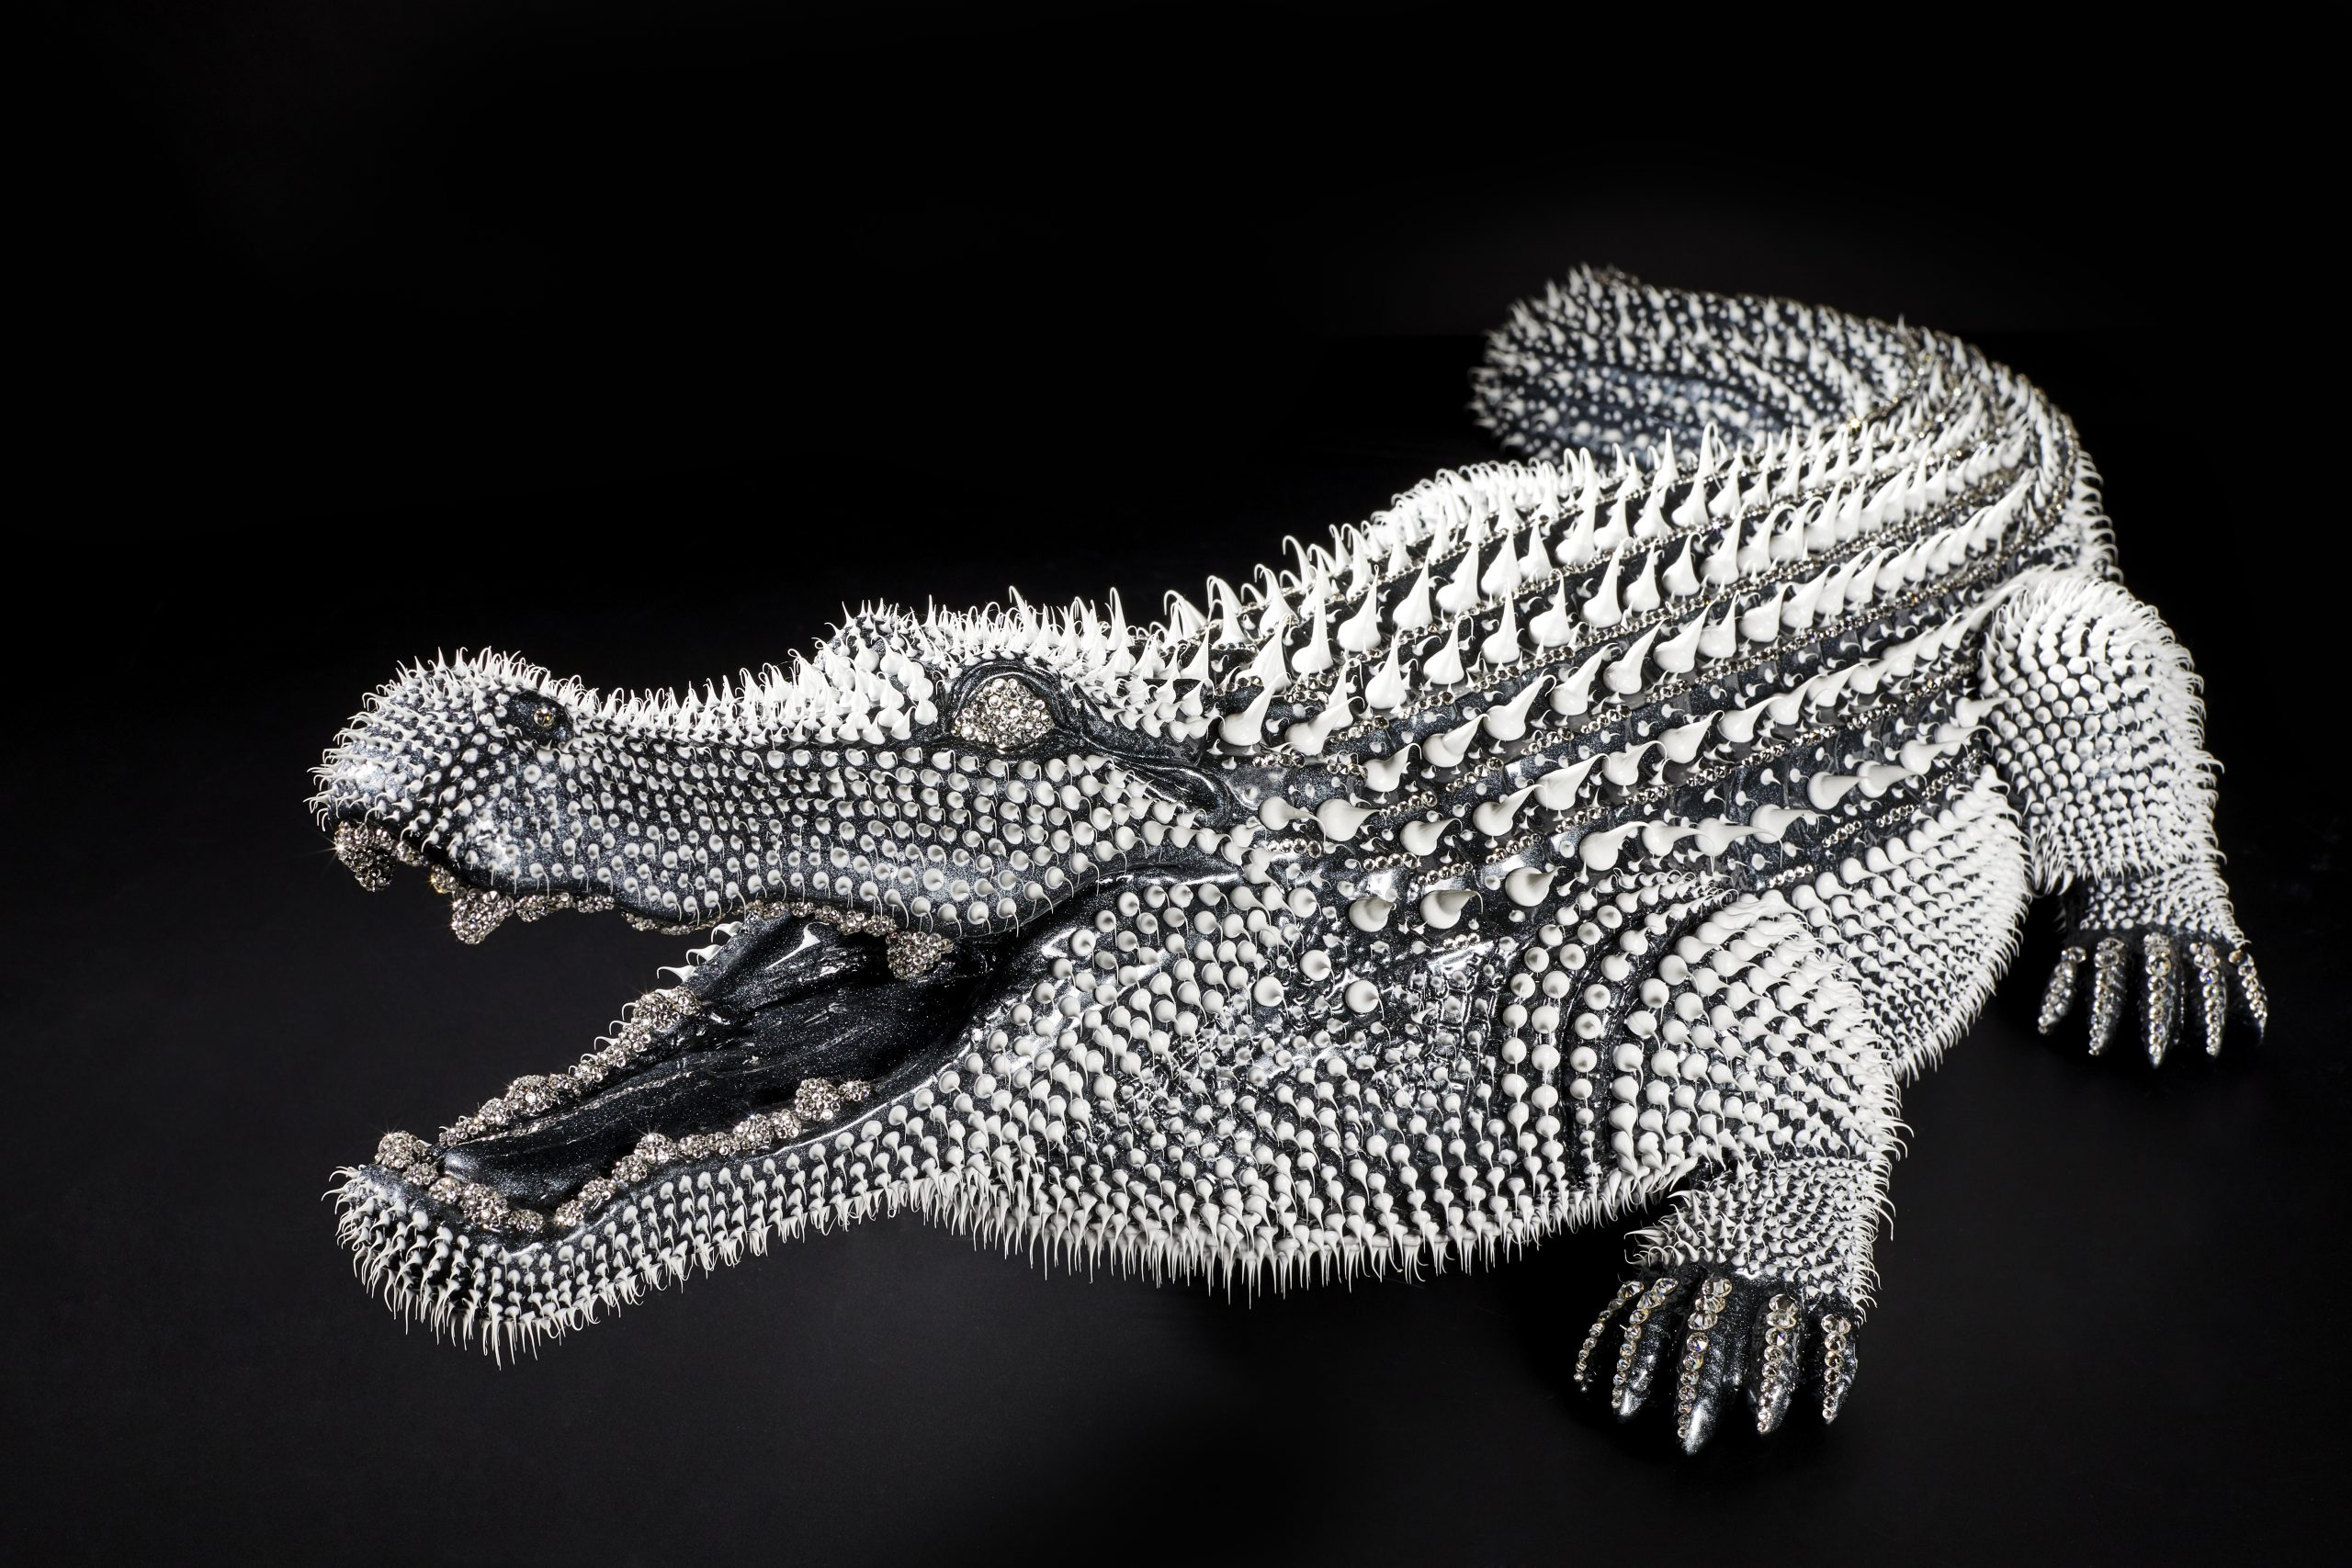 CROCODILE Mixte 310x100 cm/122 x  39.4 inches